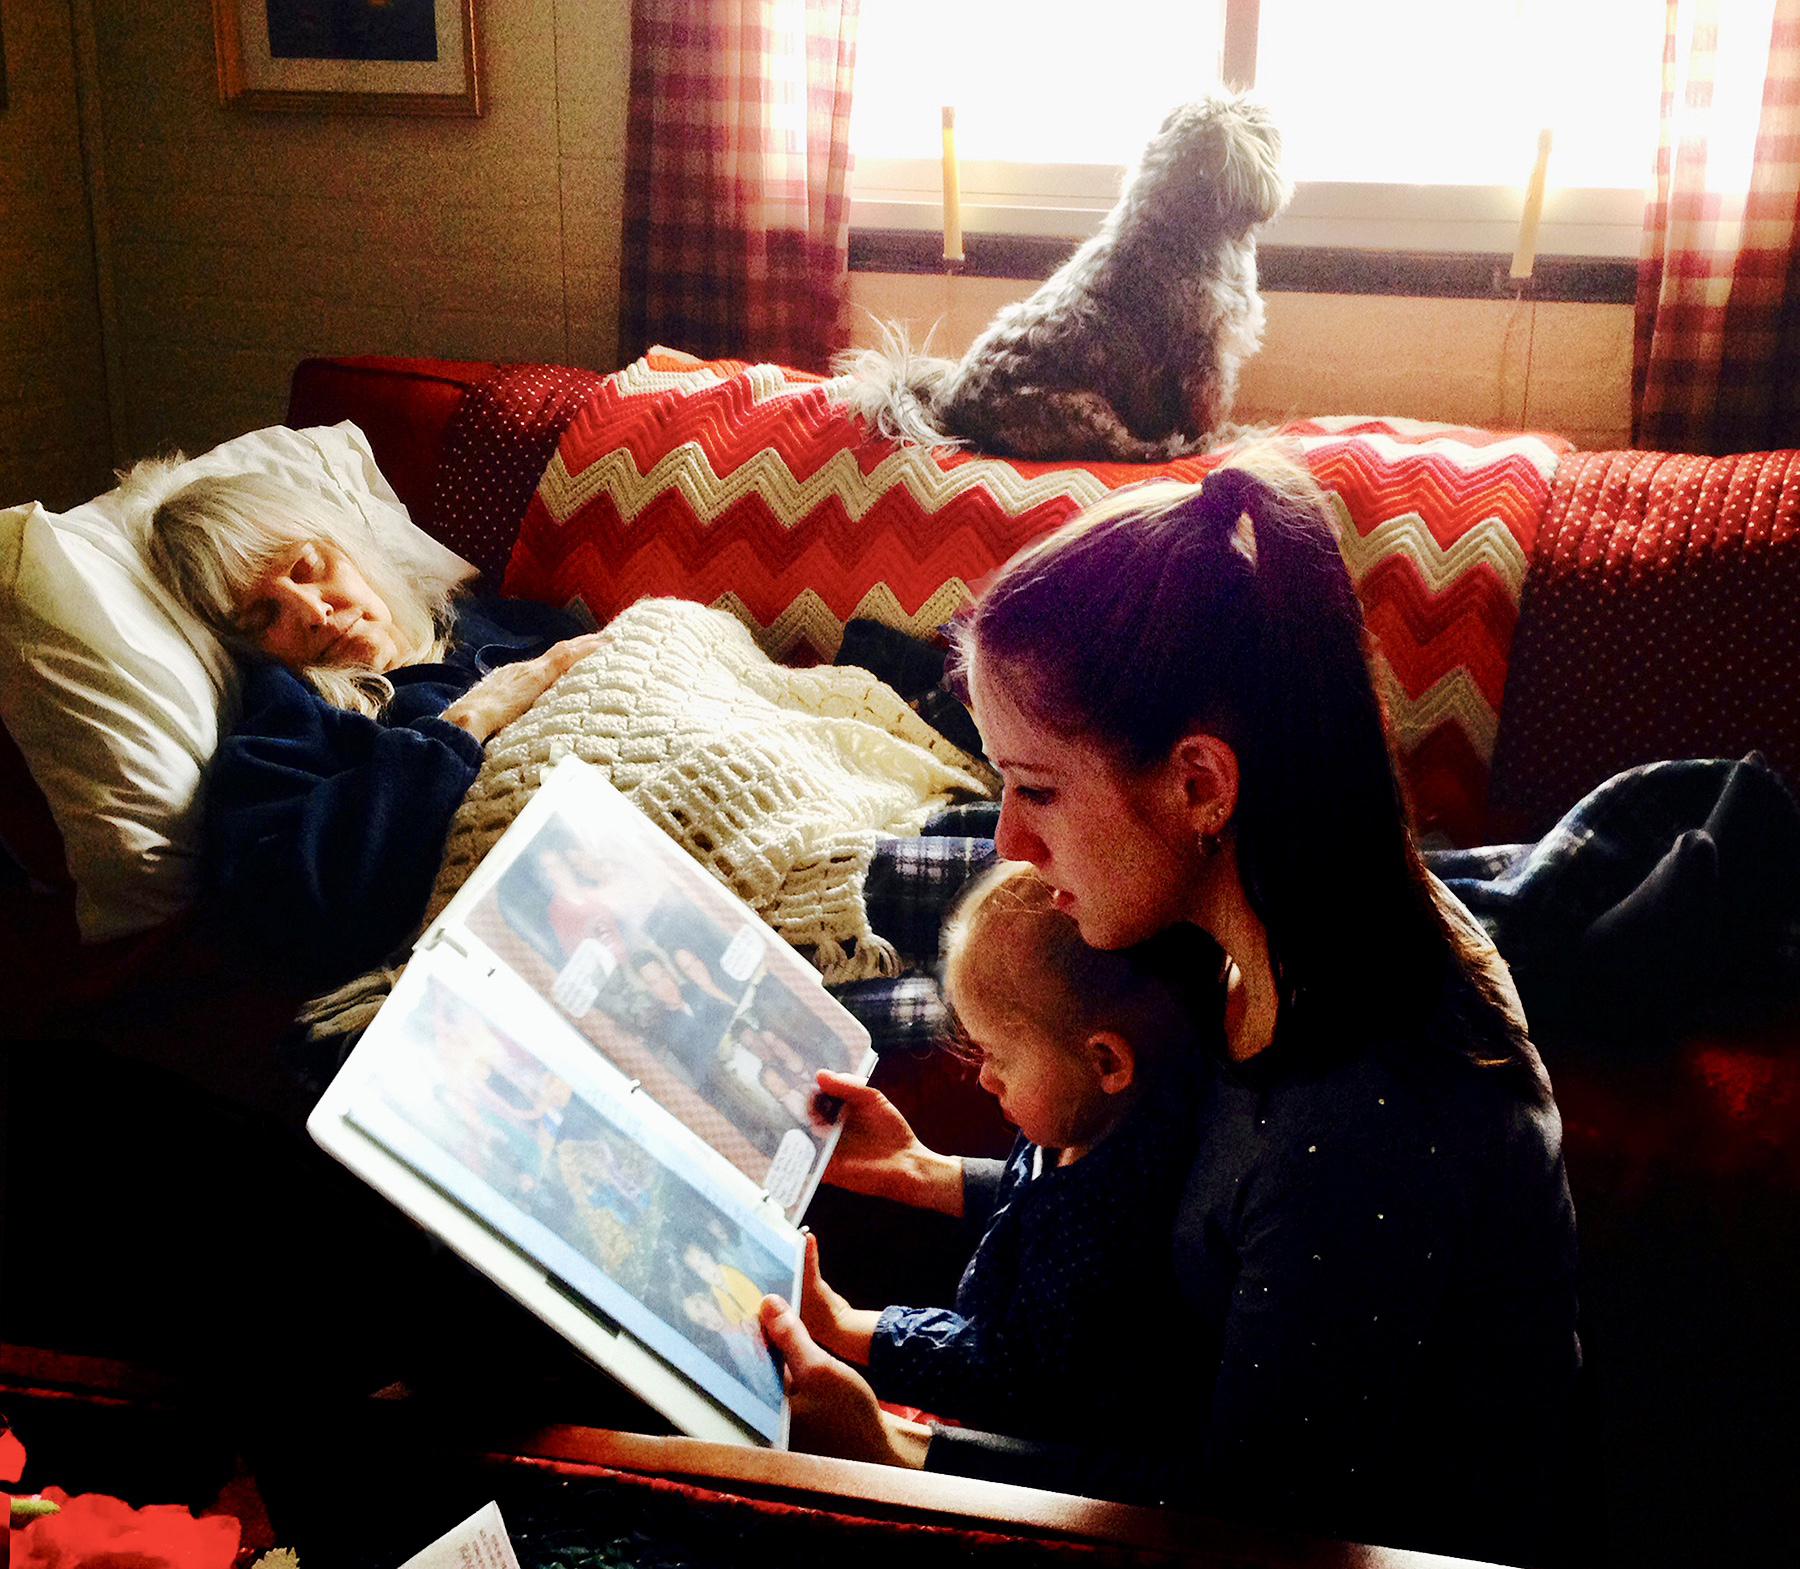 My daughter Mackenzie, and granddaughter Mia looking at scrapbooks by my mother's bedside.